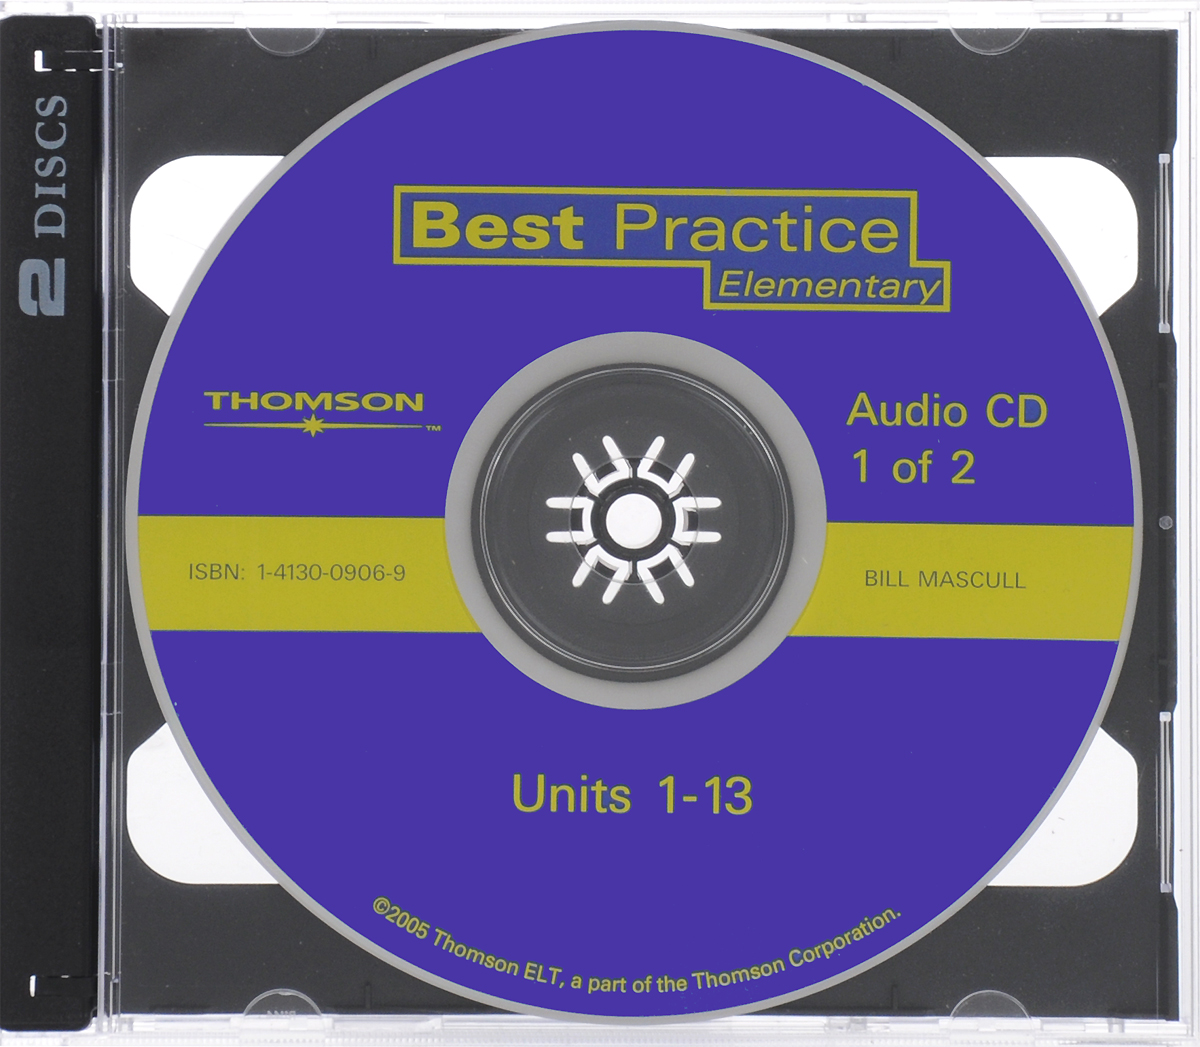 Best Practice: Elementary (аудиокурс на 2 CD) get ready for international business a2 level 1 аудиокурс на 2 cd